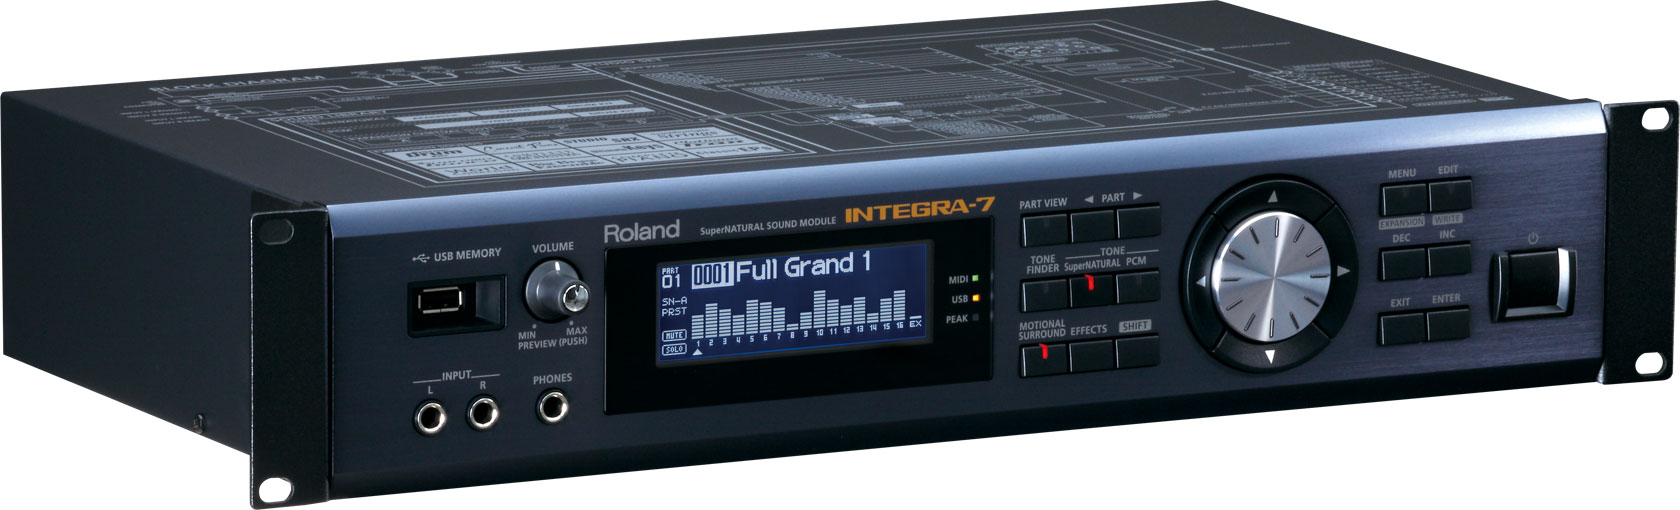 Roland - INTEGRA-7 | SuperNATURAL Sound Module